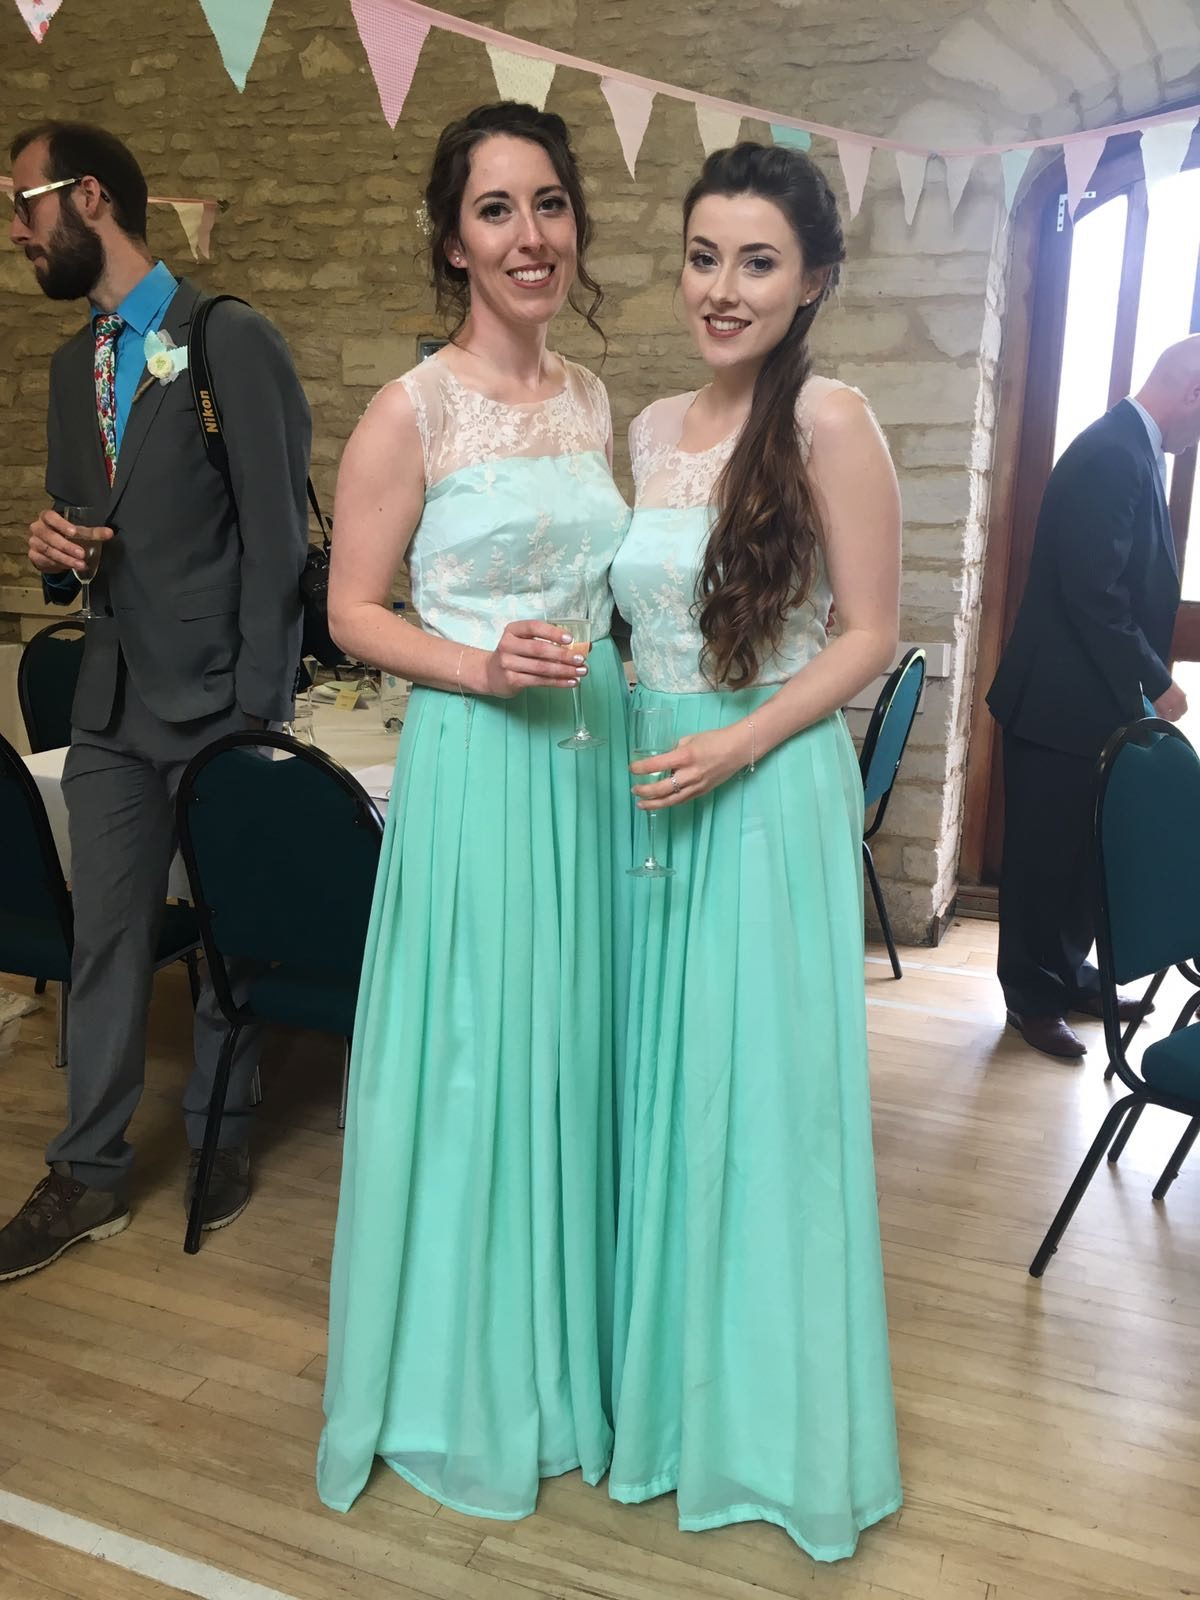 Bridesmaid Dresses made with Satin Fabric